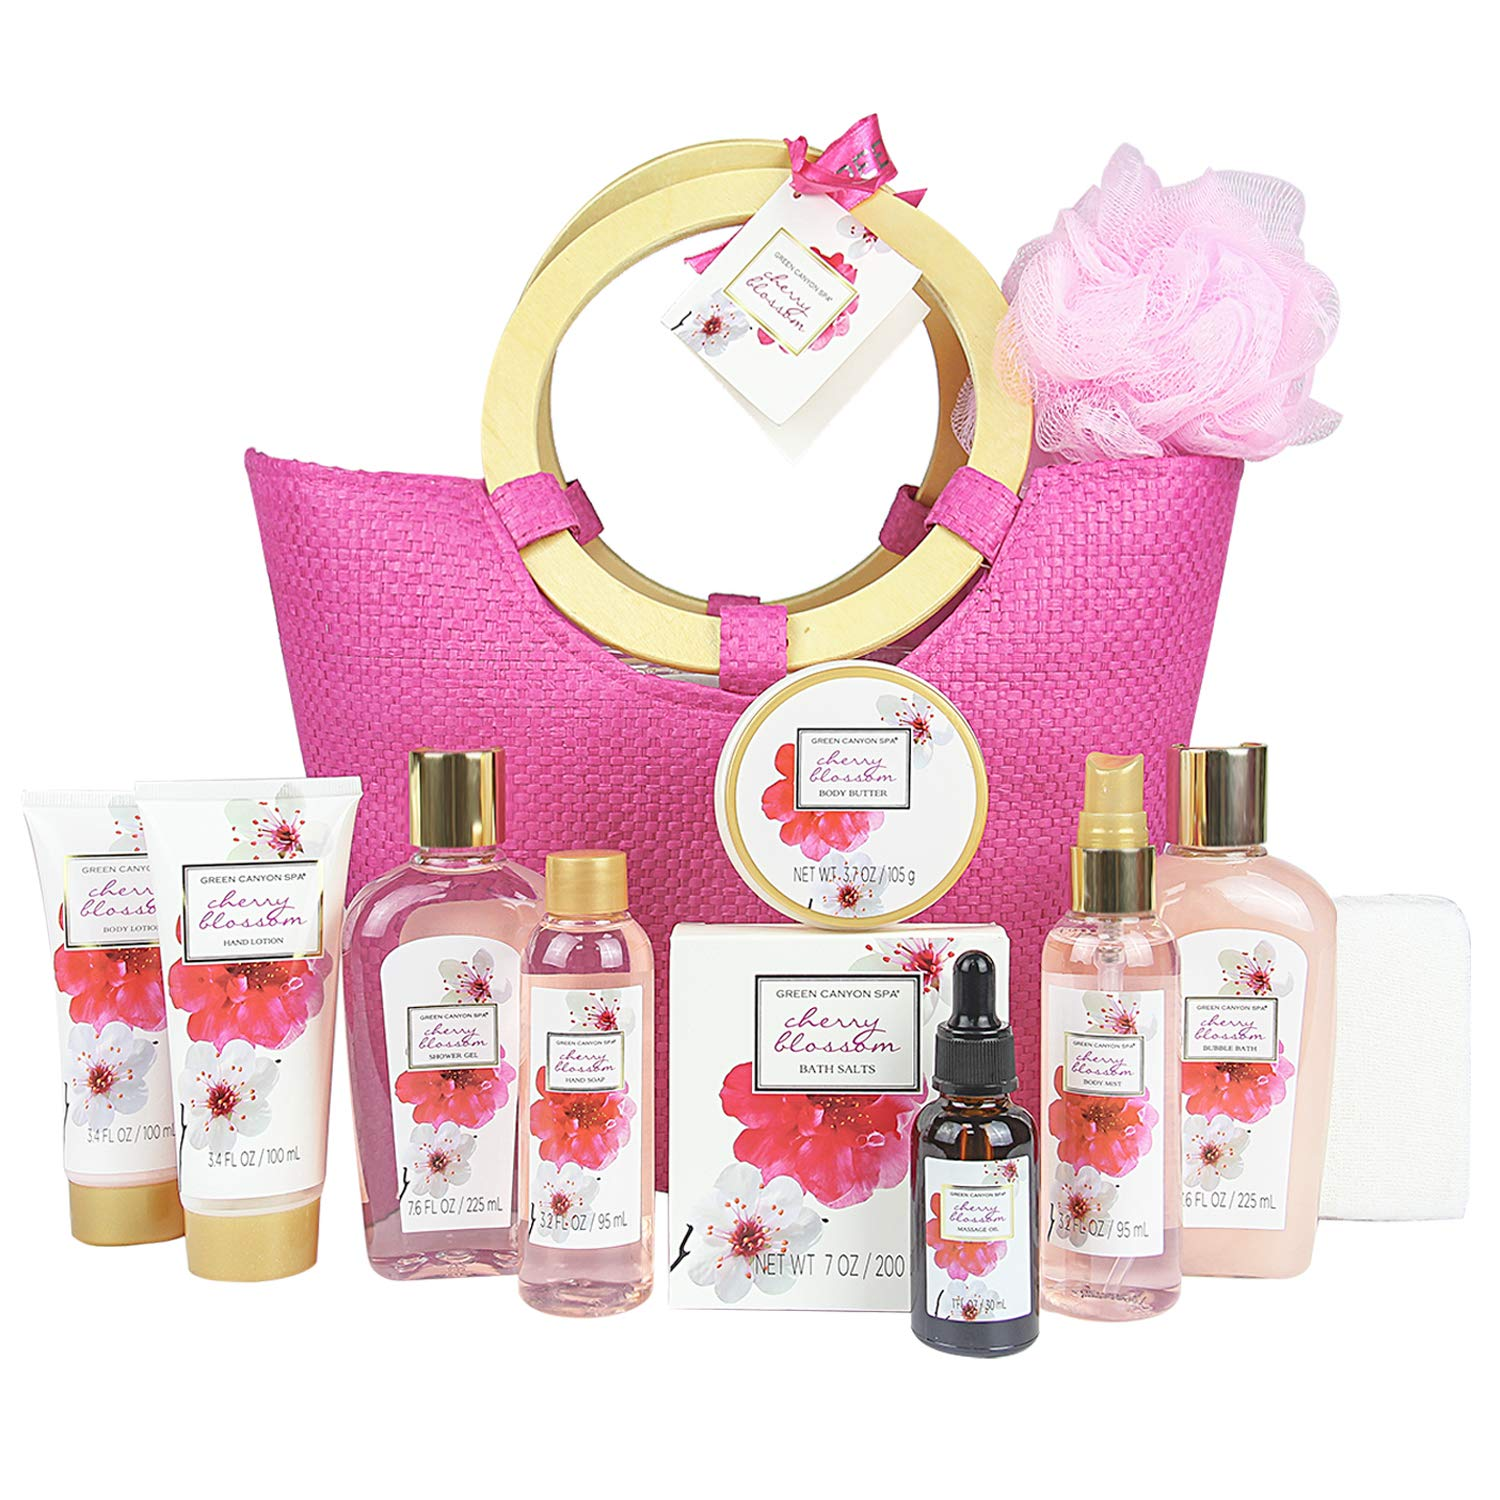 Green Canyon Spa Gift Baskets for women in Pink Tote Bag Upgraded 12 Pcs Spa Gift Sets Cherry Blossom Collective Birthday Gift for Her by Green Canyon Spa